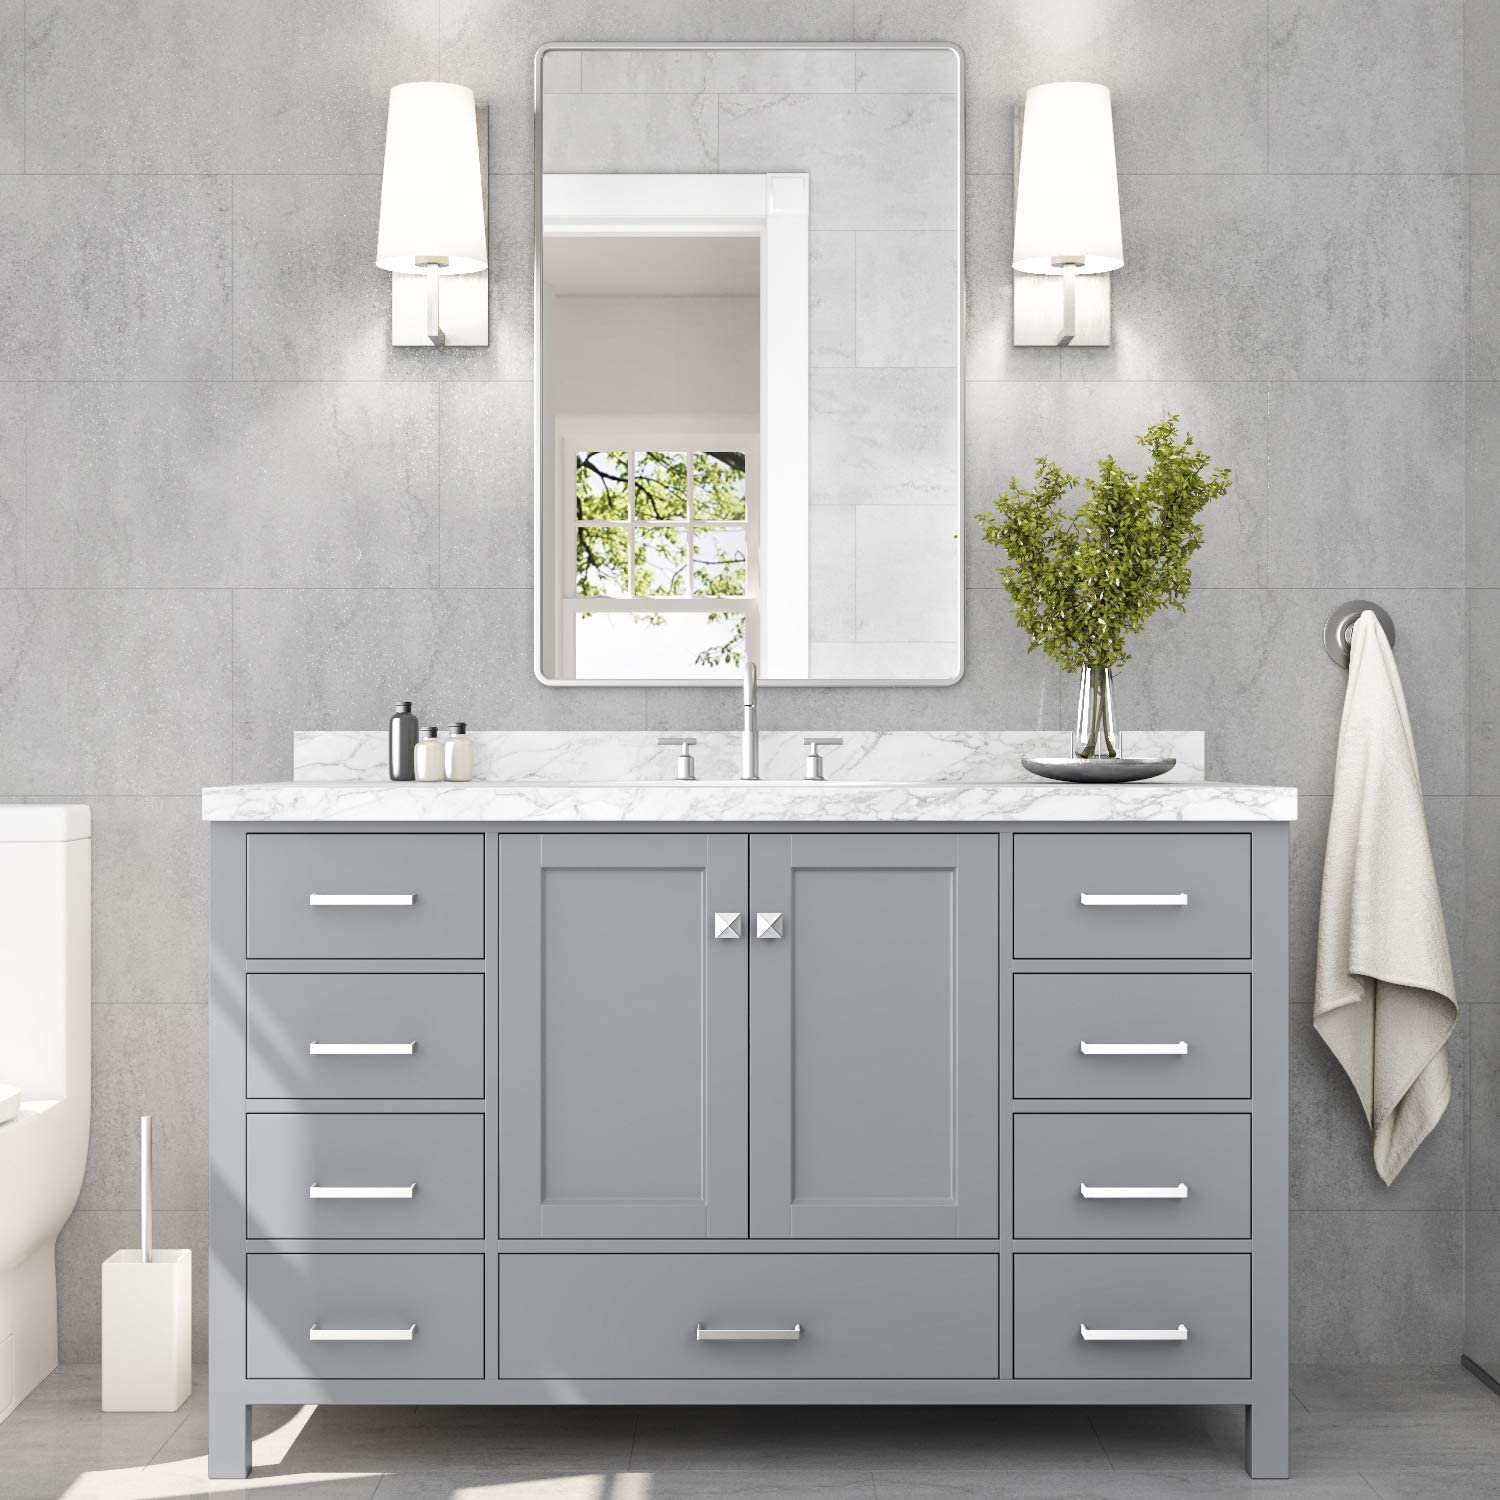 No Mirror 9 Full Extension Dovetail Drawers 2 Soft Closing Doors ARIEL Bathroom Vanity 55 Inch With Pure White Quartz Countertop and Rectangle Sink in Espresso With Backsplash